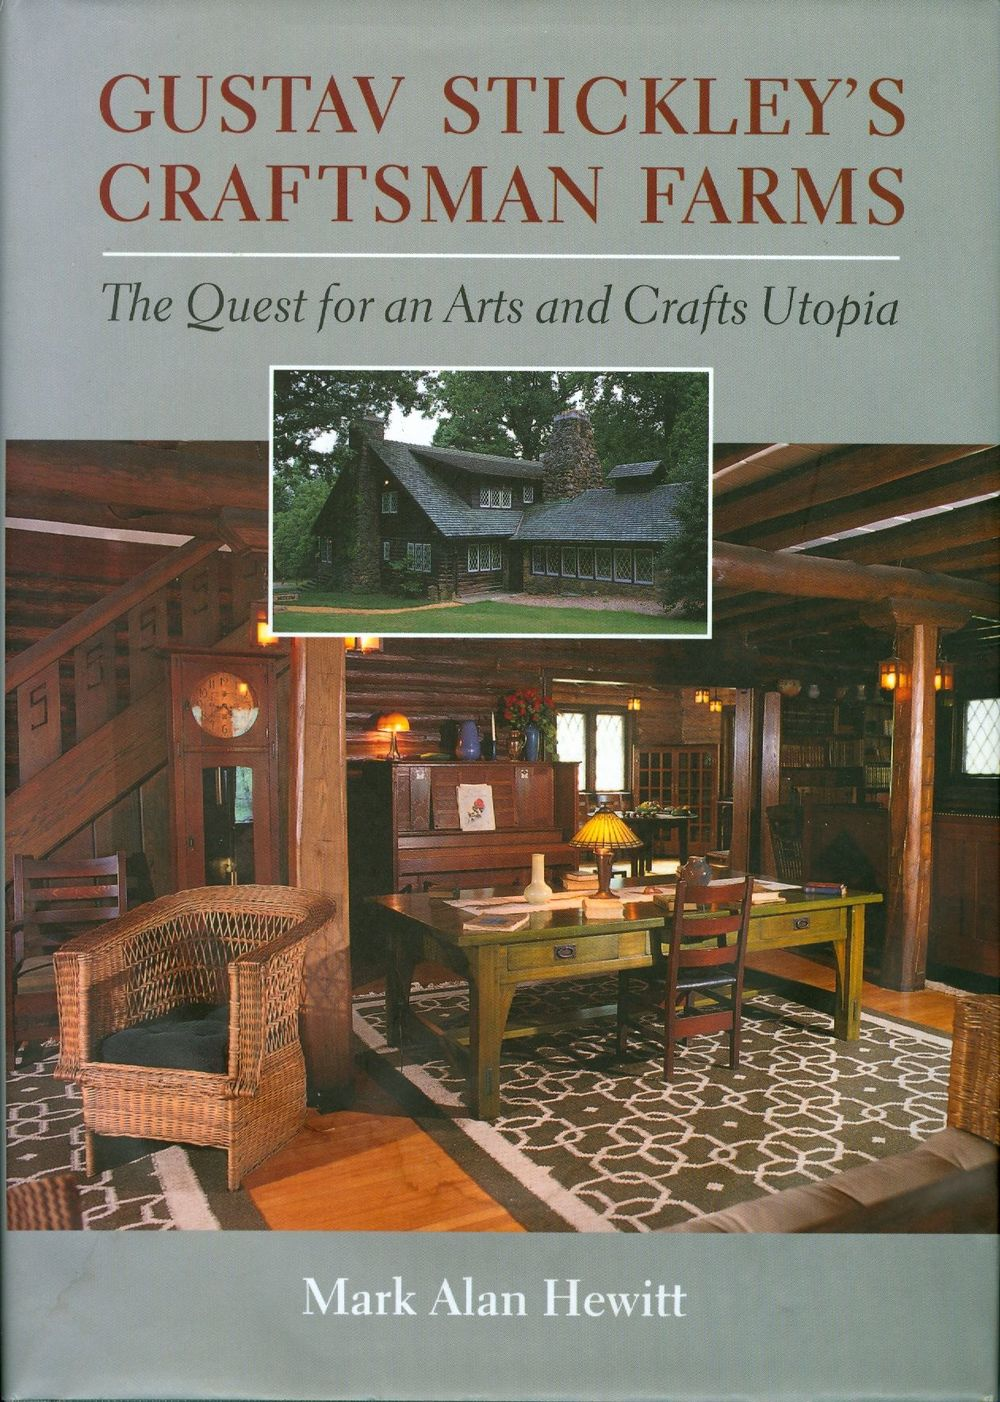 Mark Hewitt's 2001 monograph on Gustav Stickley was named one of the top 25 books by a New Jersey author by Rutgers University.